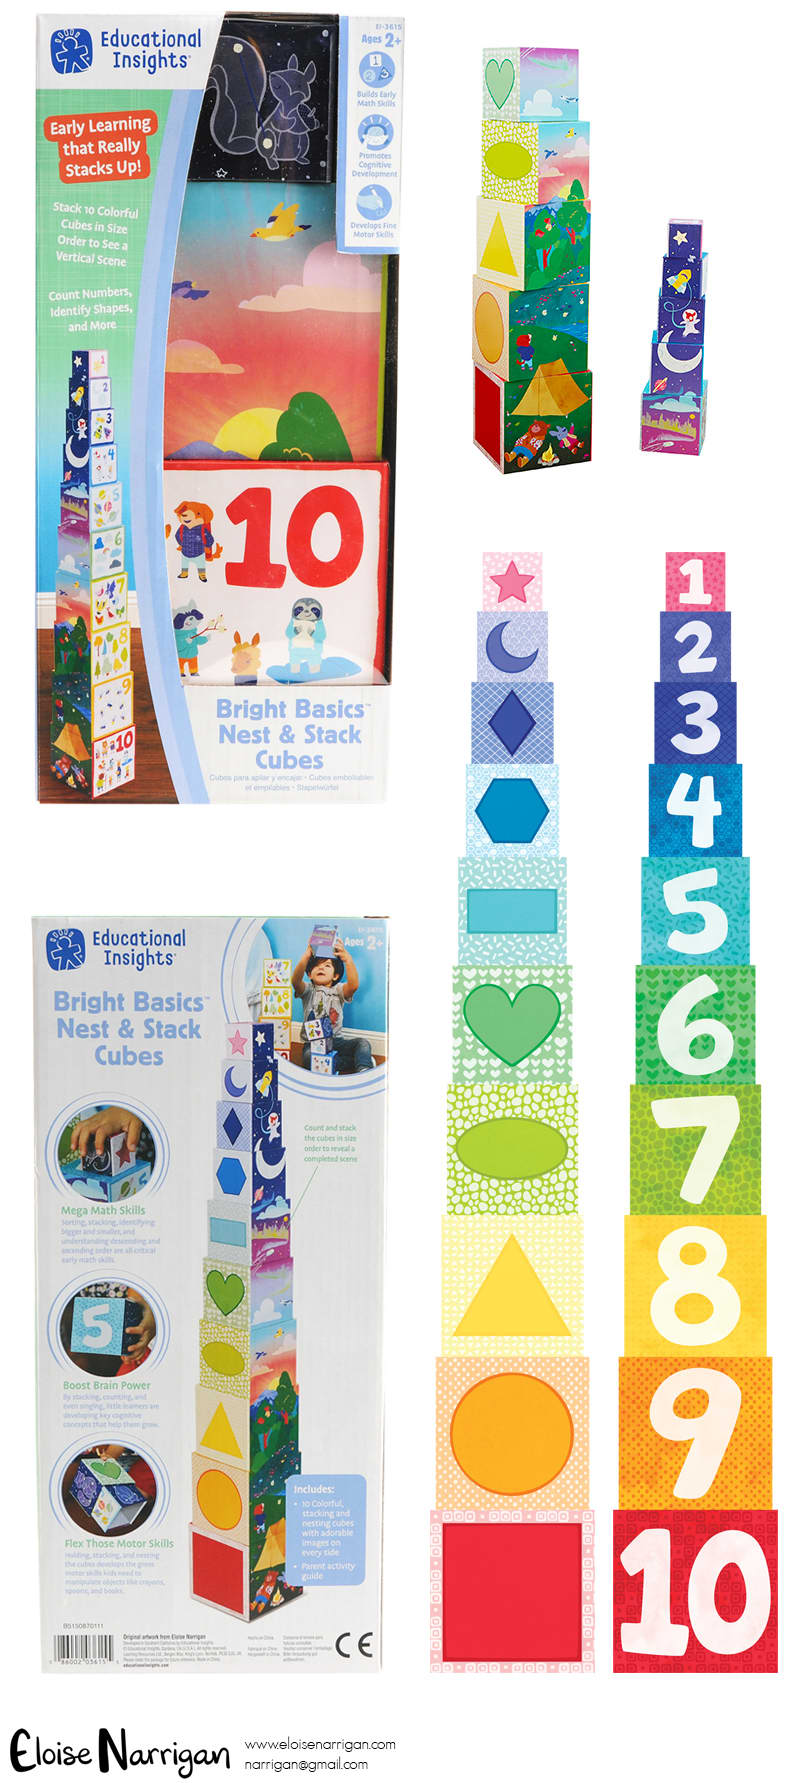 Bright Basics for Educational Insights